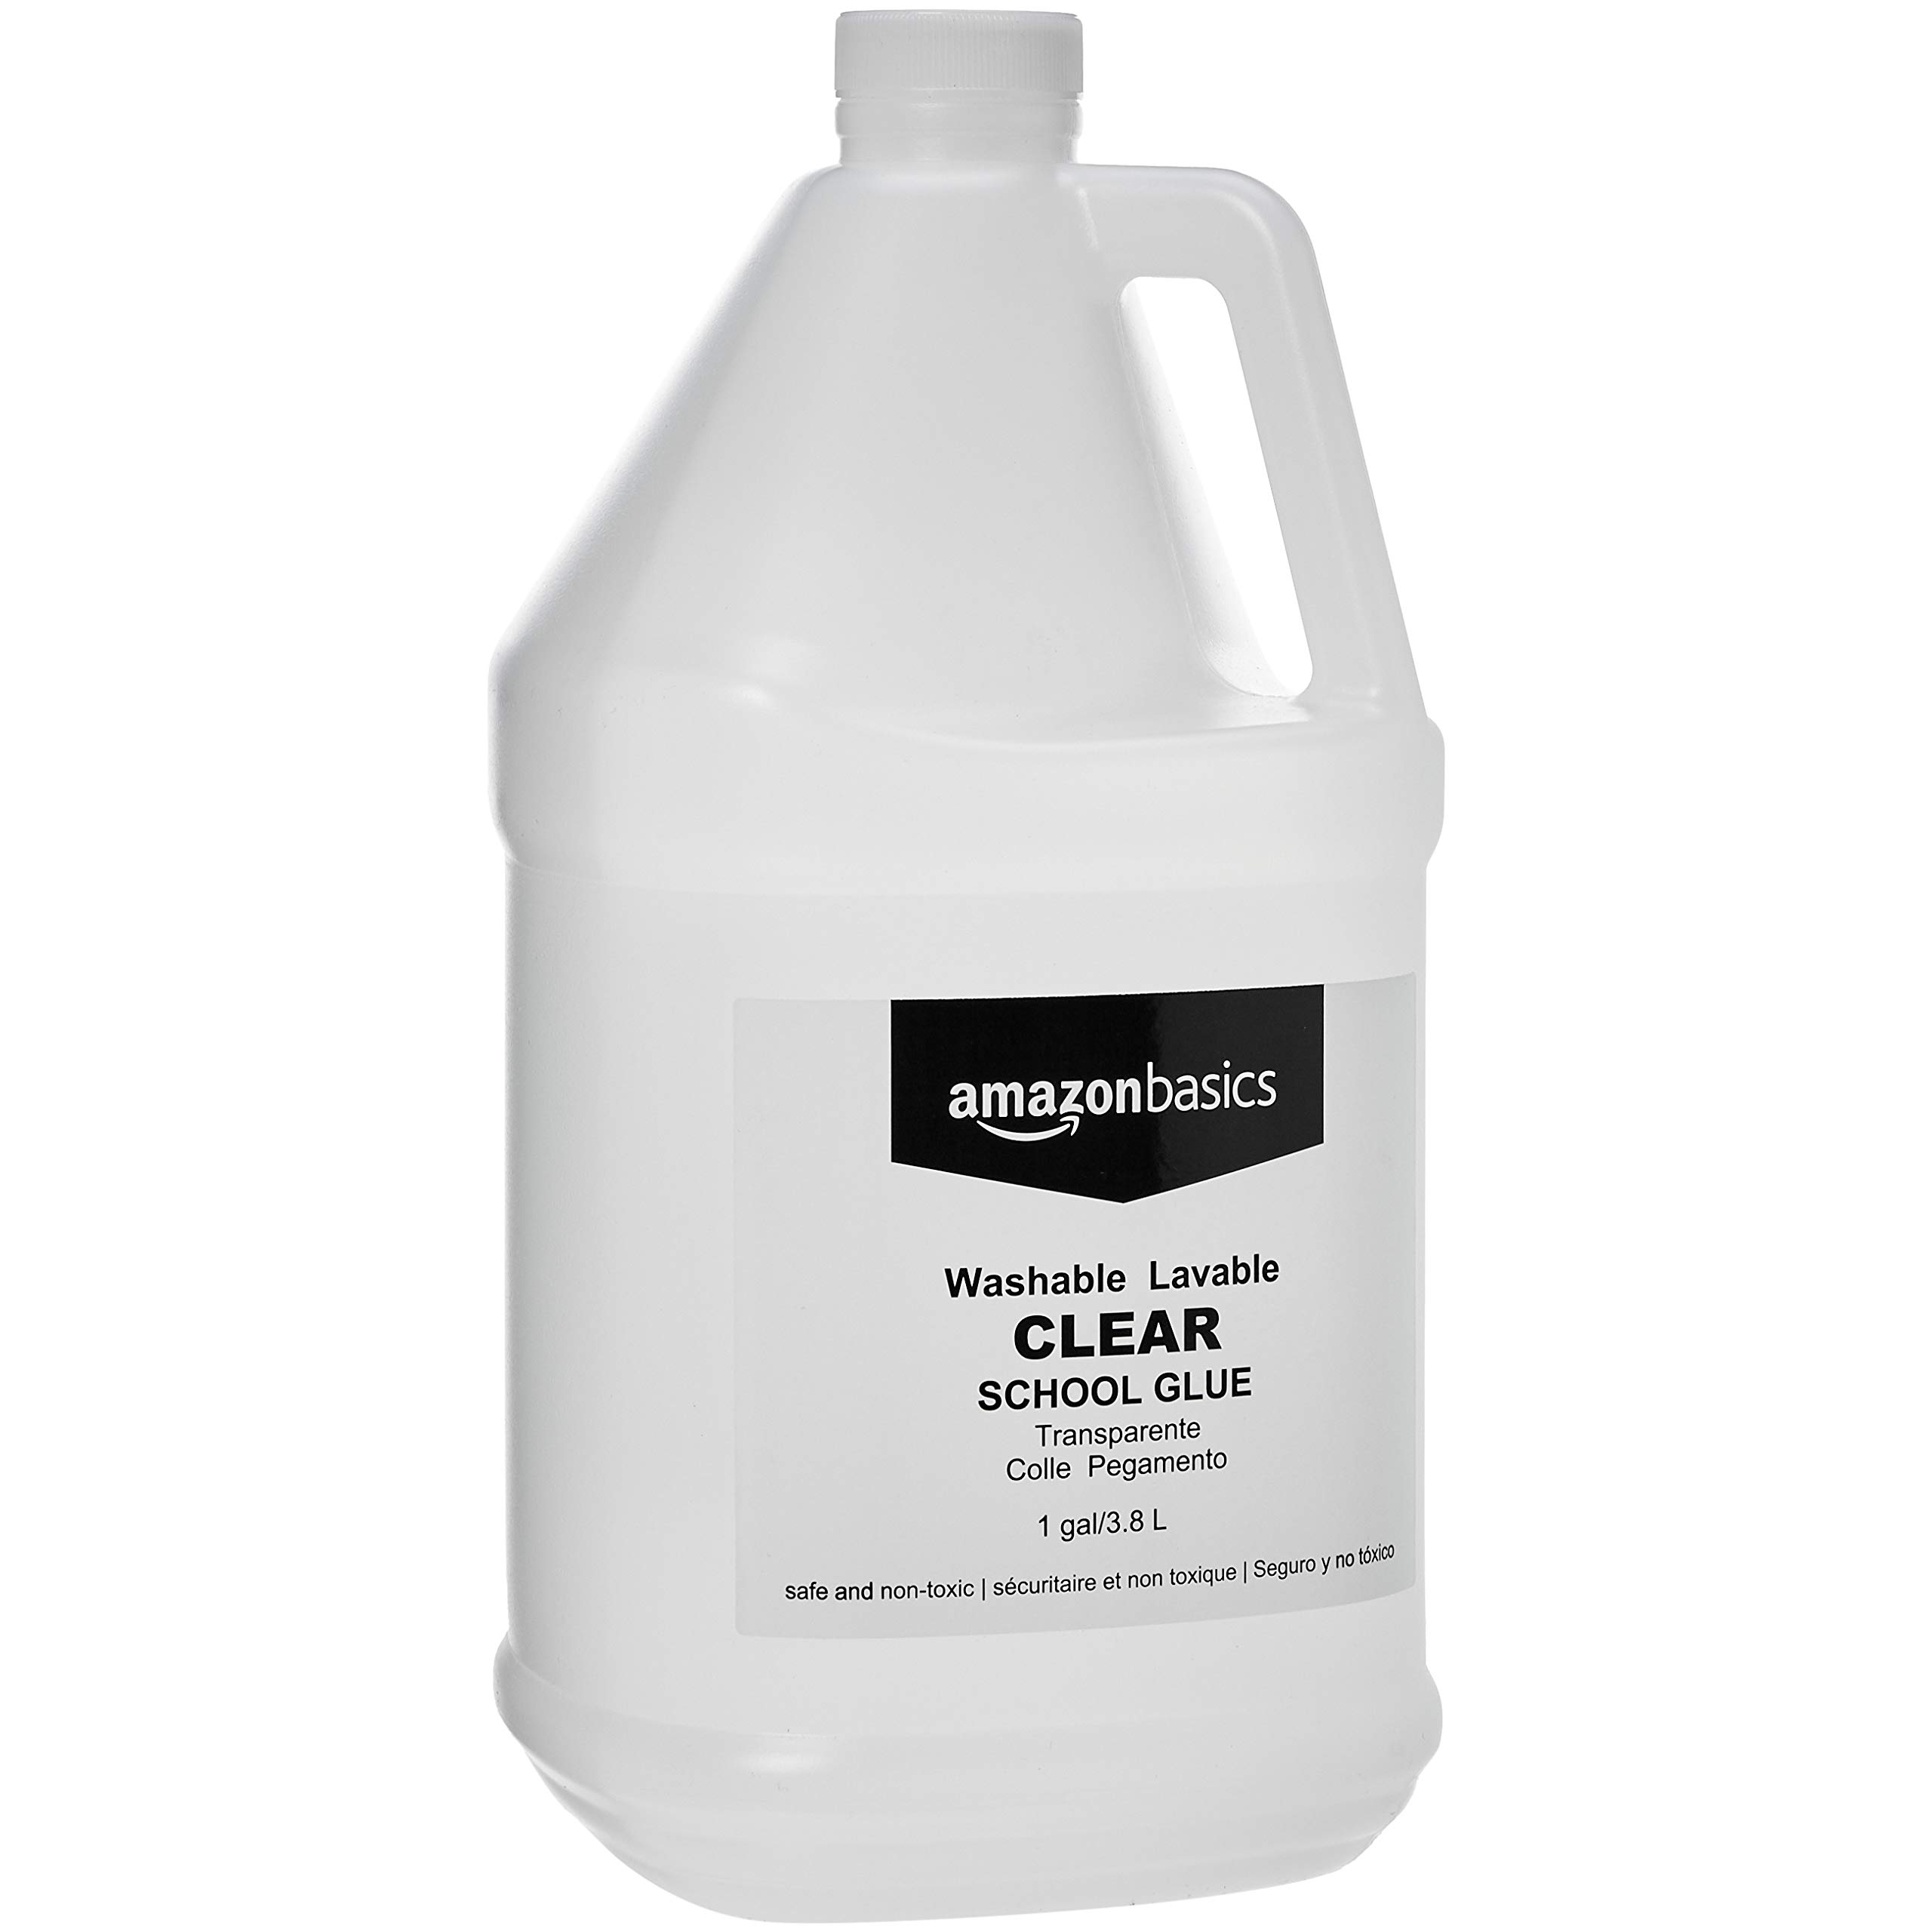 AmazonBasics All Purpose Washable School Clear Liquid Glue - Great for Making Slime, 1 Gallon Bottle, 2-Pack by AmazonBasics